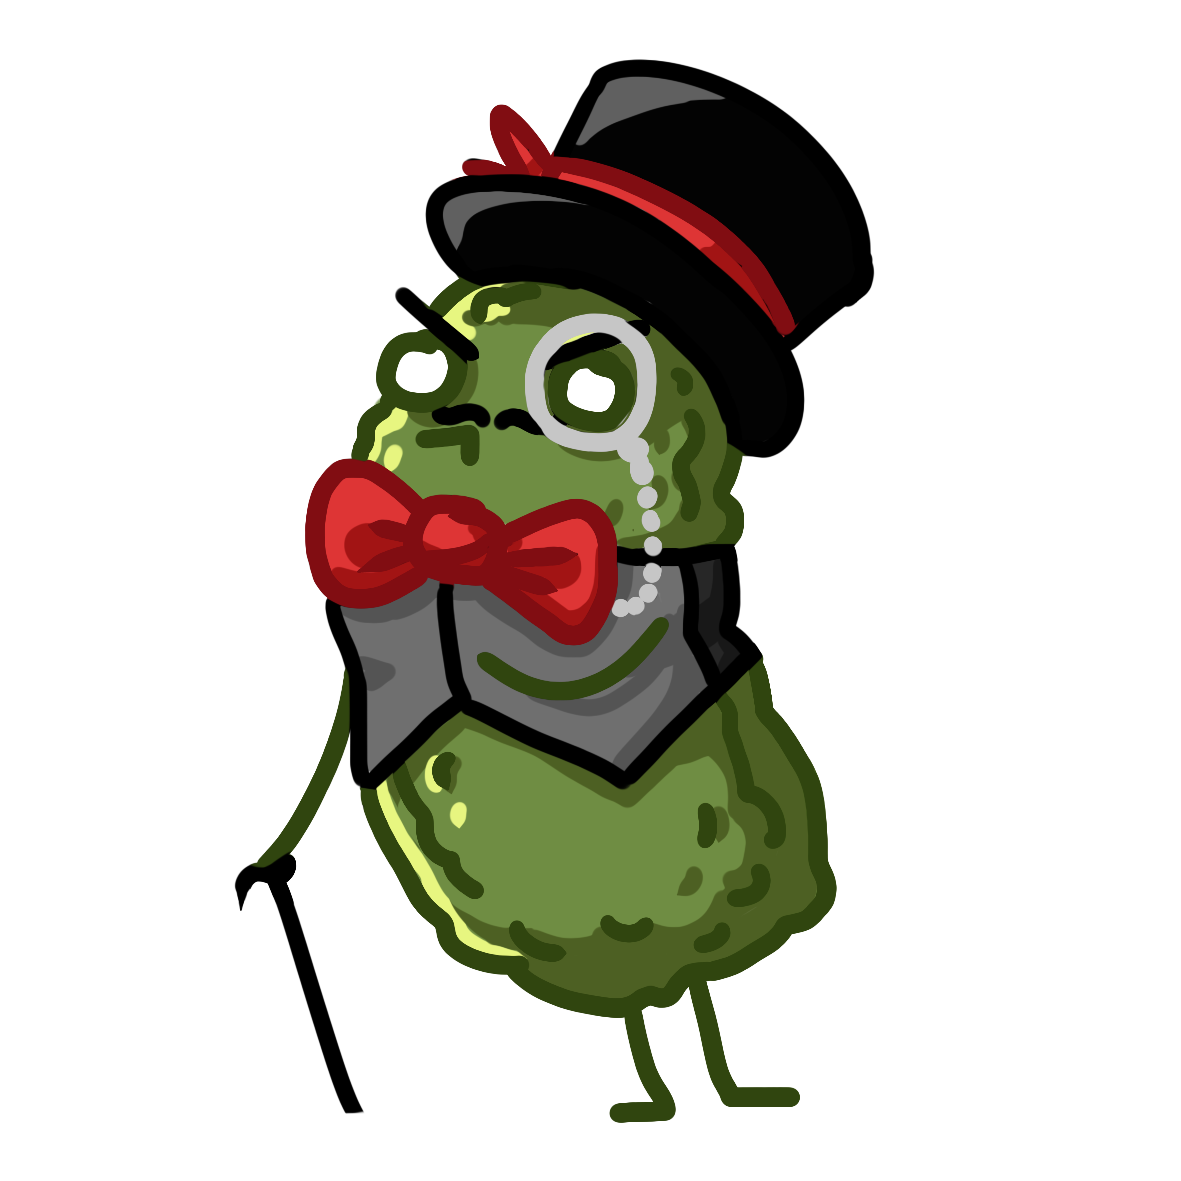 Pickle clipart pixel art. Image mr png drawfee